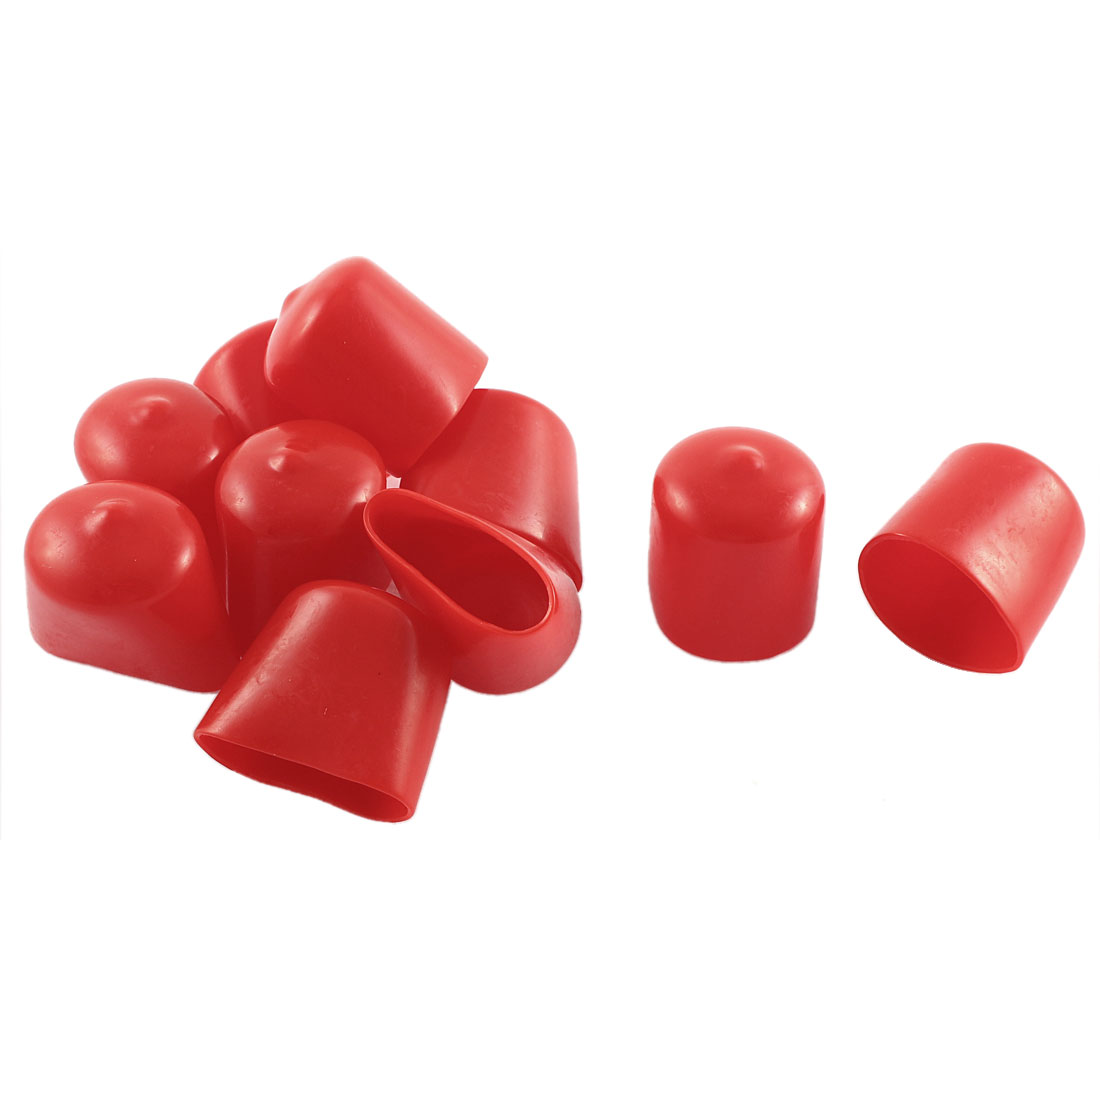 10Pcs Red Soft Plastic PVC Insulated End Sleeves Caps Cover 25mm Dia